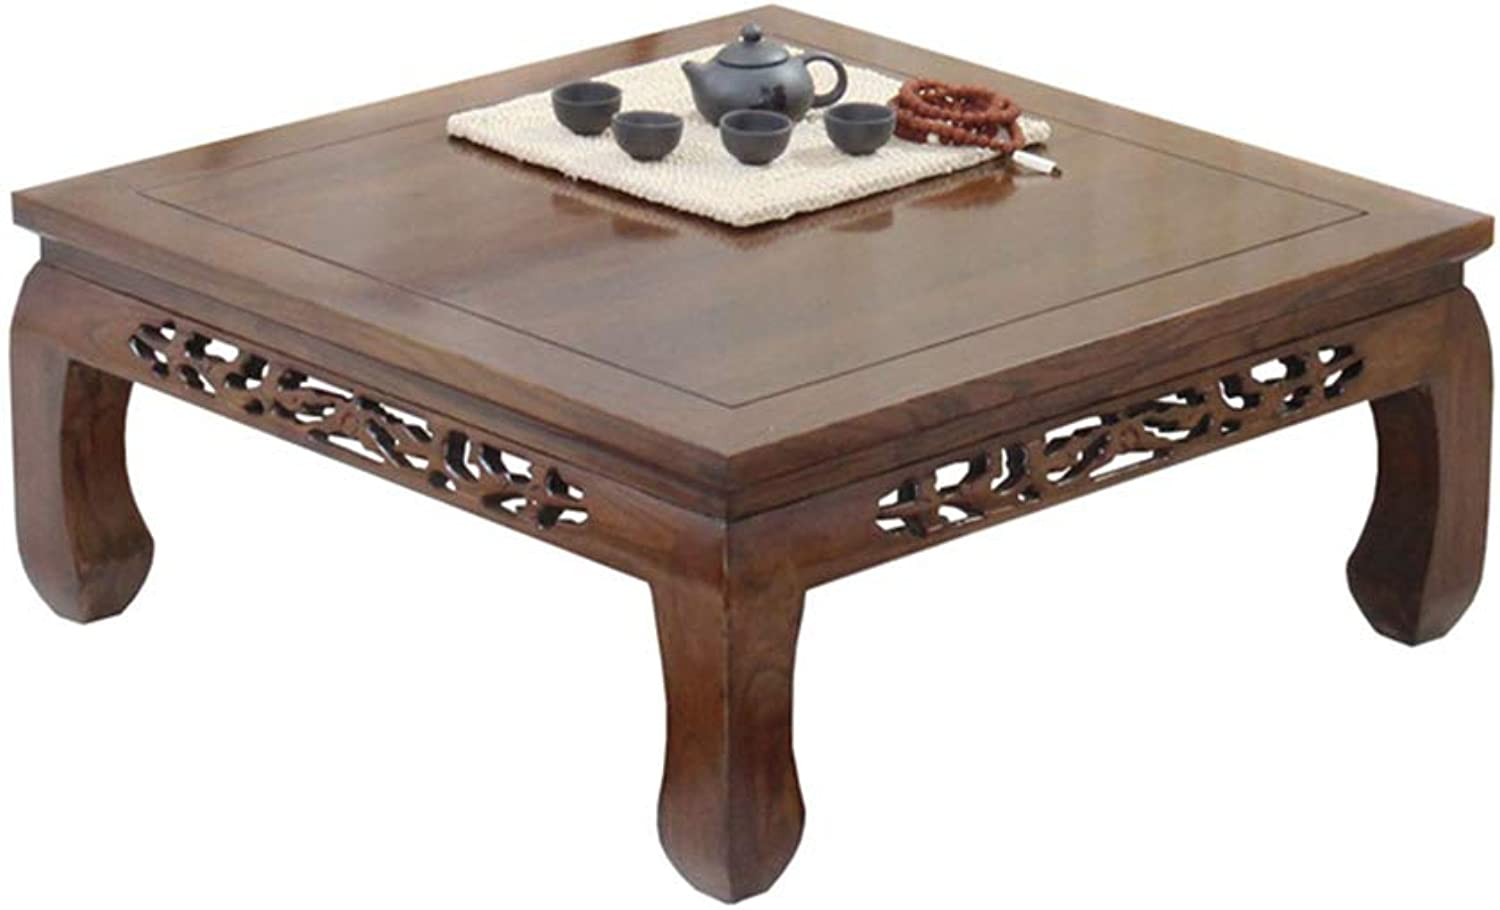 Coffee Tables Coffee Table Square Solid Wood Table Balcony Carved Small Coffee Table Bay Window Small Desk Japanese Tatami Coffee Table Living Room Brown Modern Coffee Table